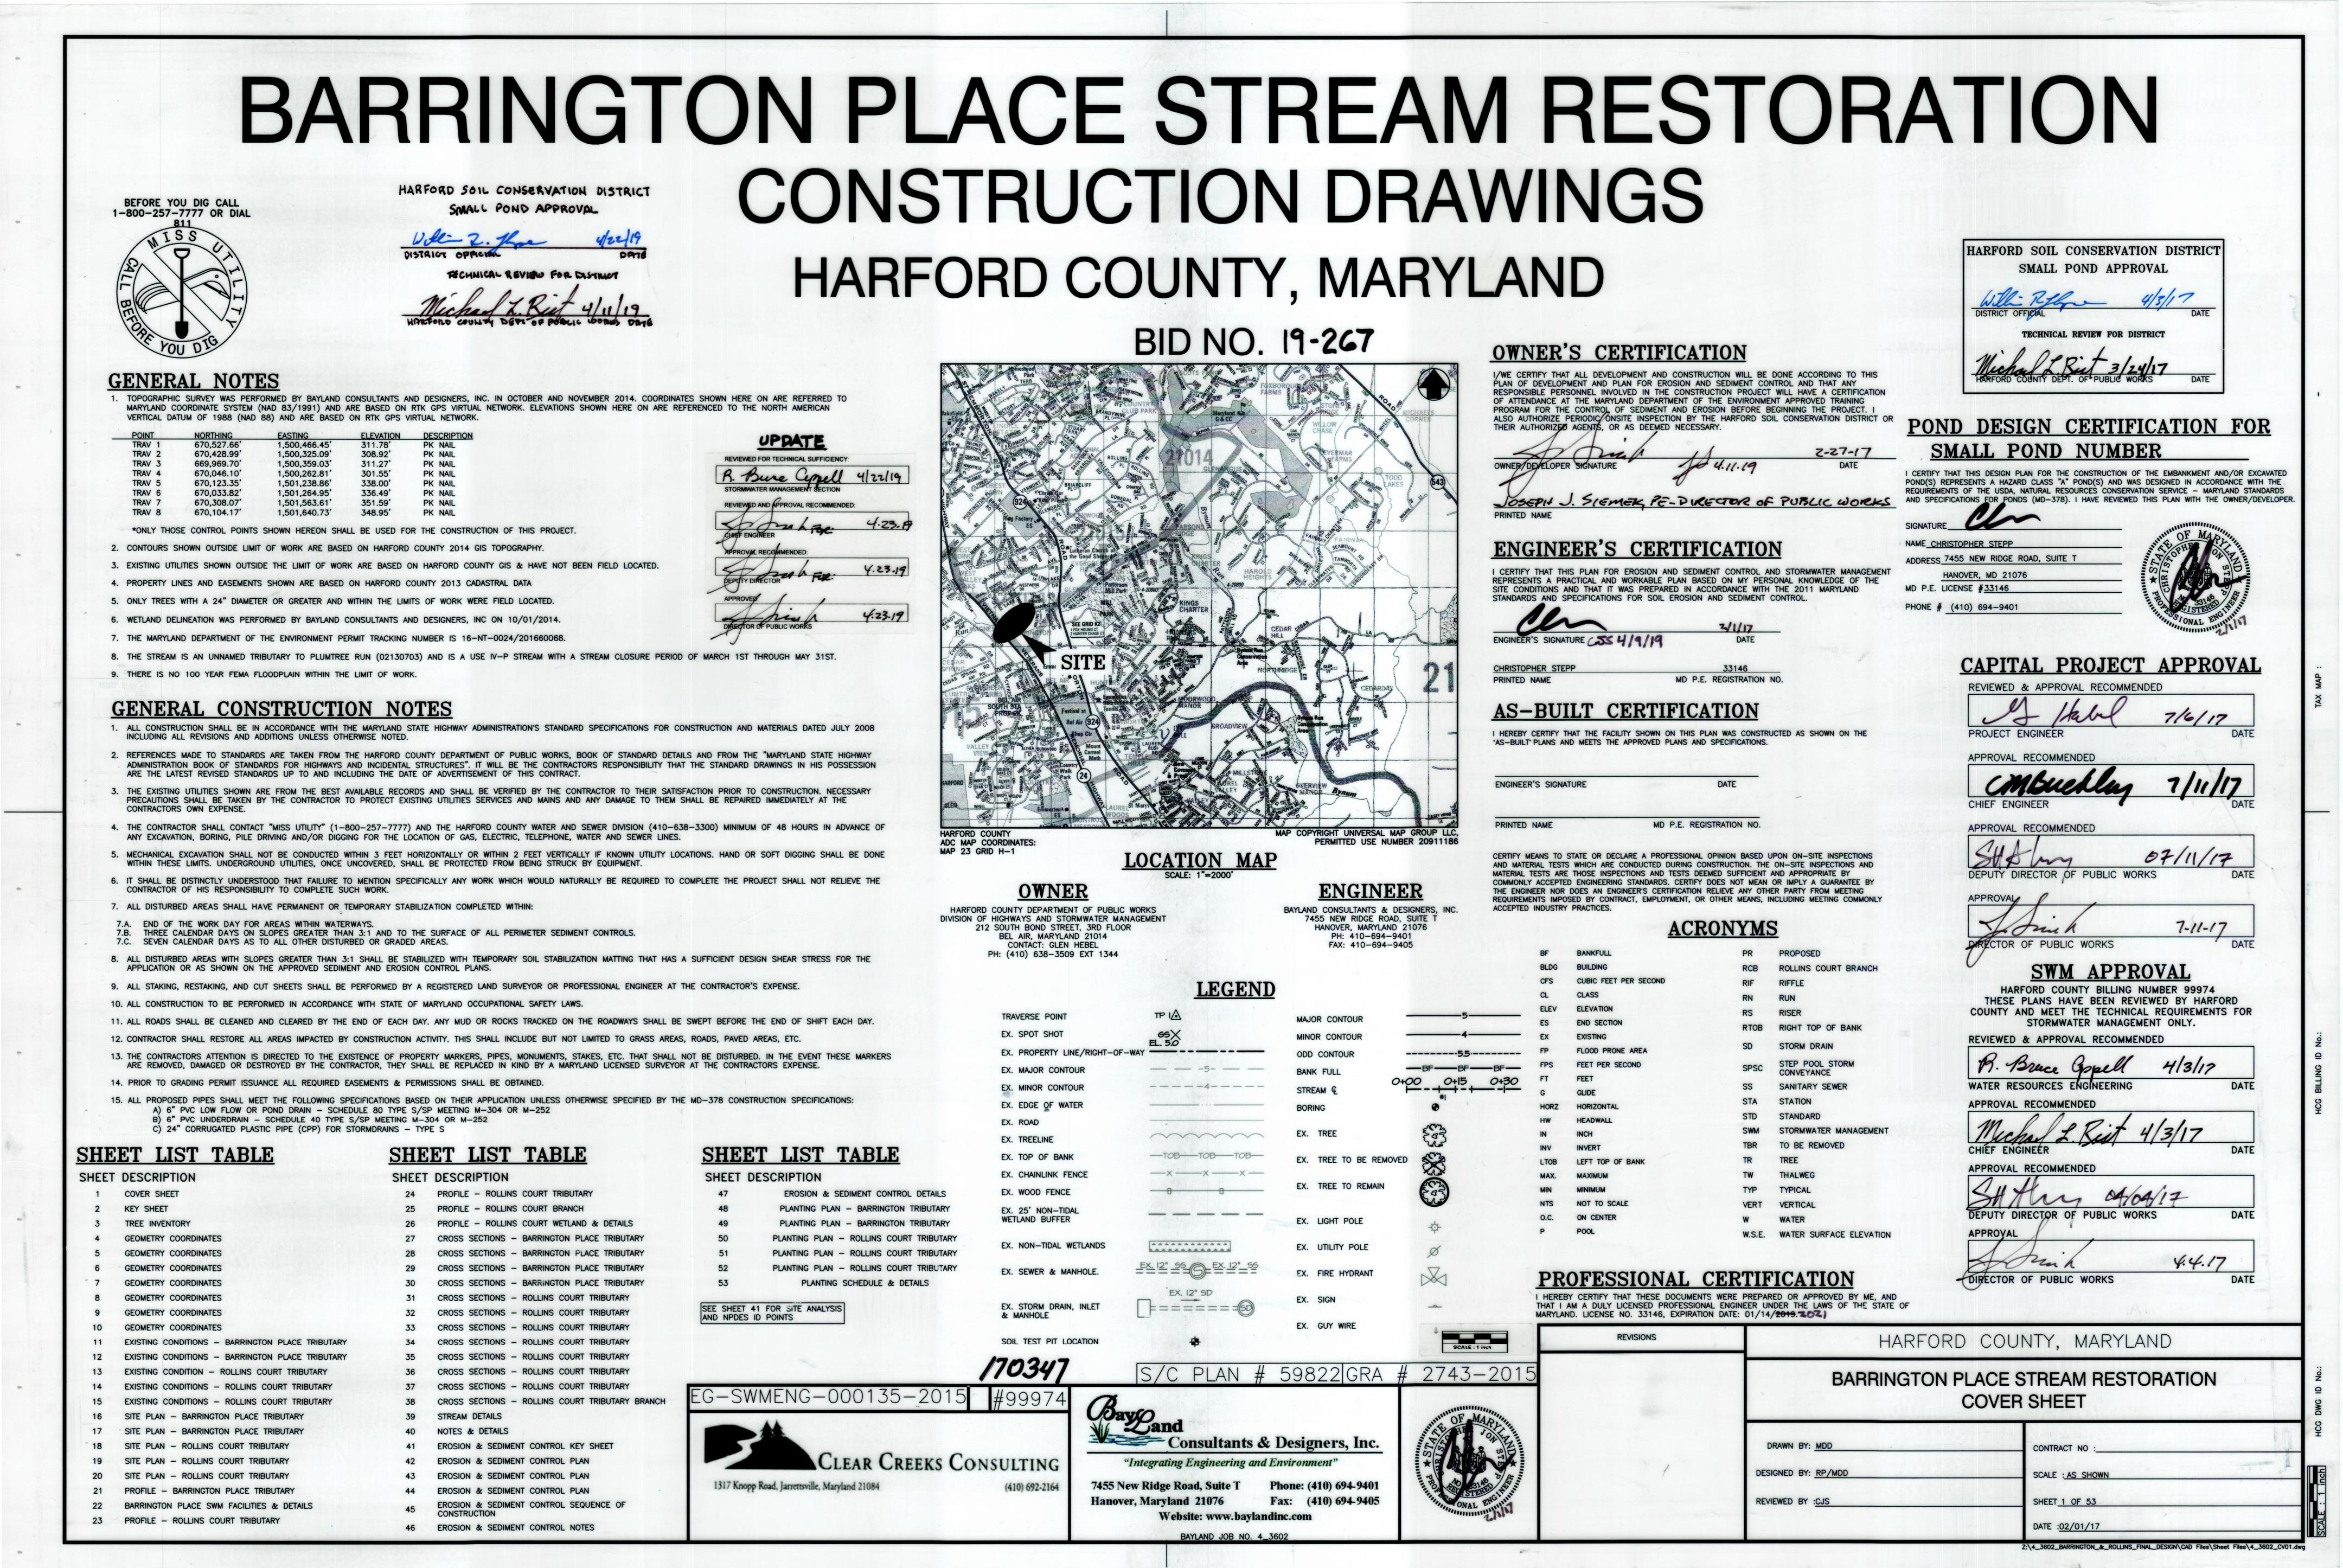 Barrington Plan Title Sheet Opens in new window